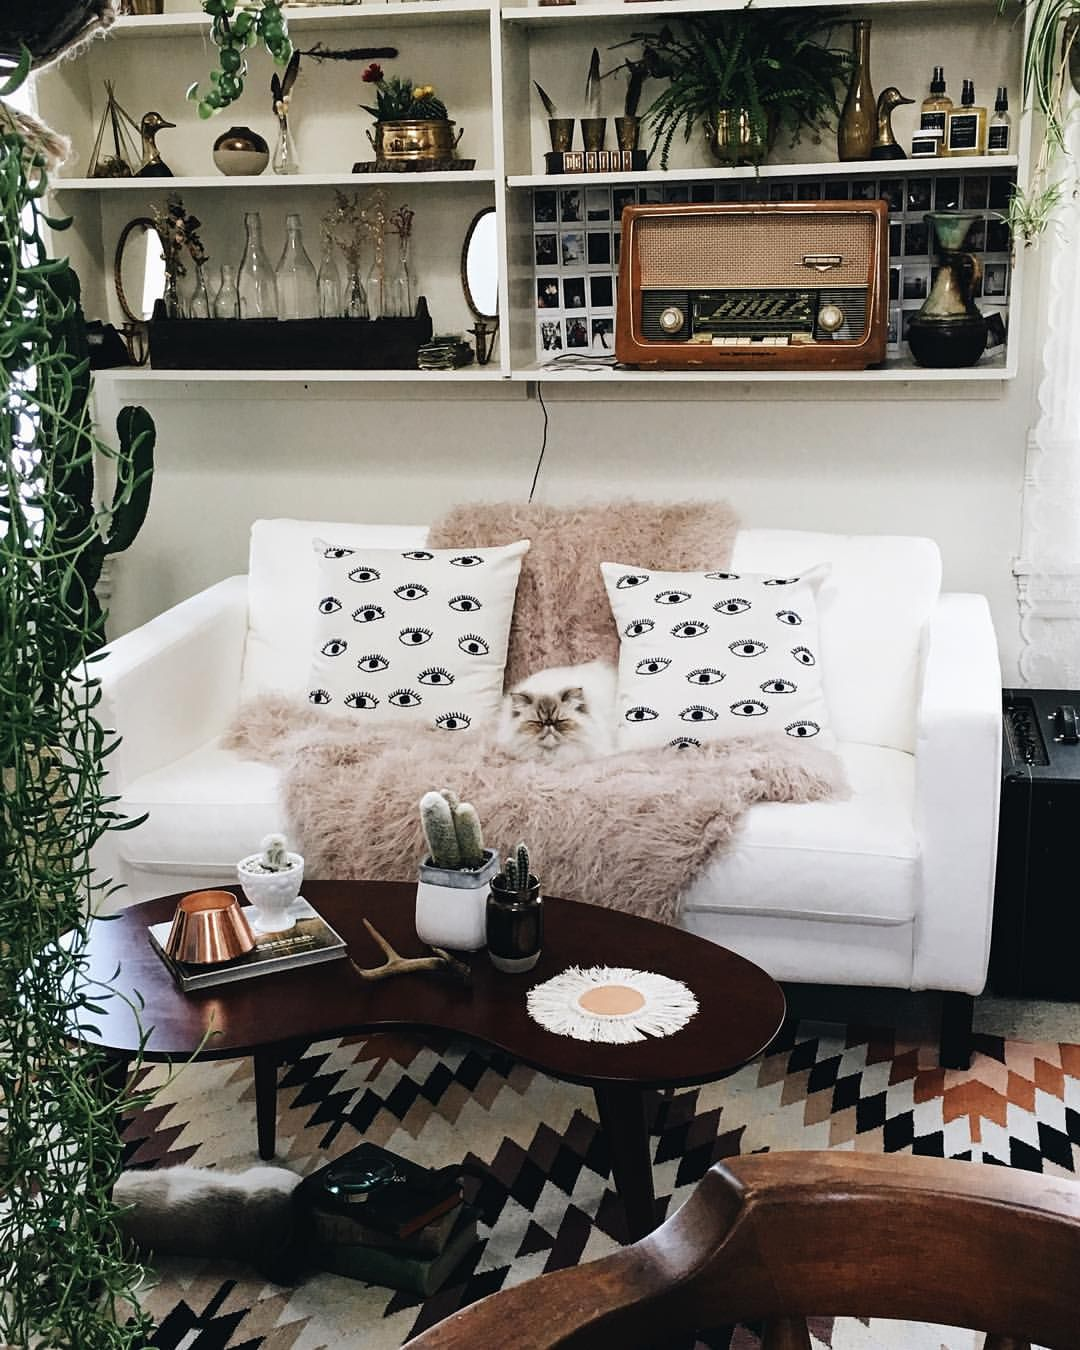 Urban outfitters tumblr uohome pinterest urban for Room decor urban outfitters